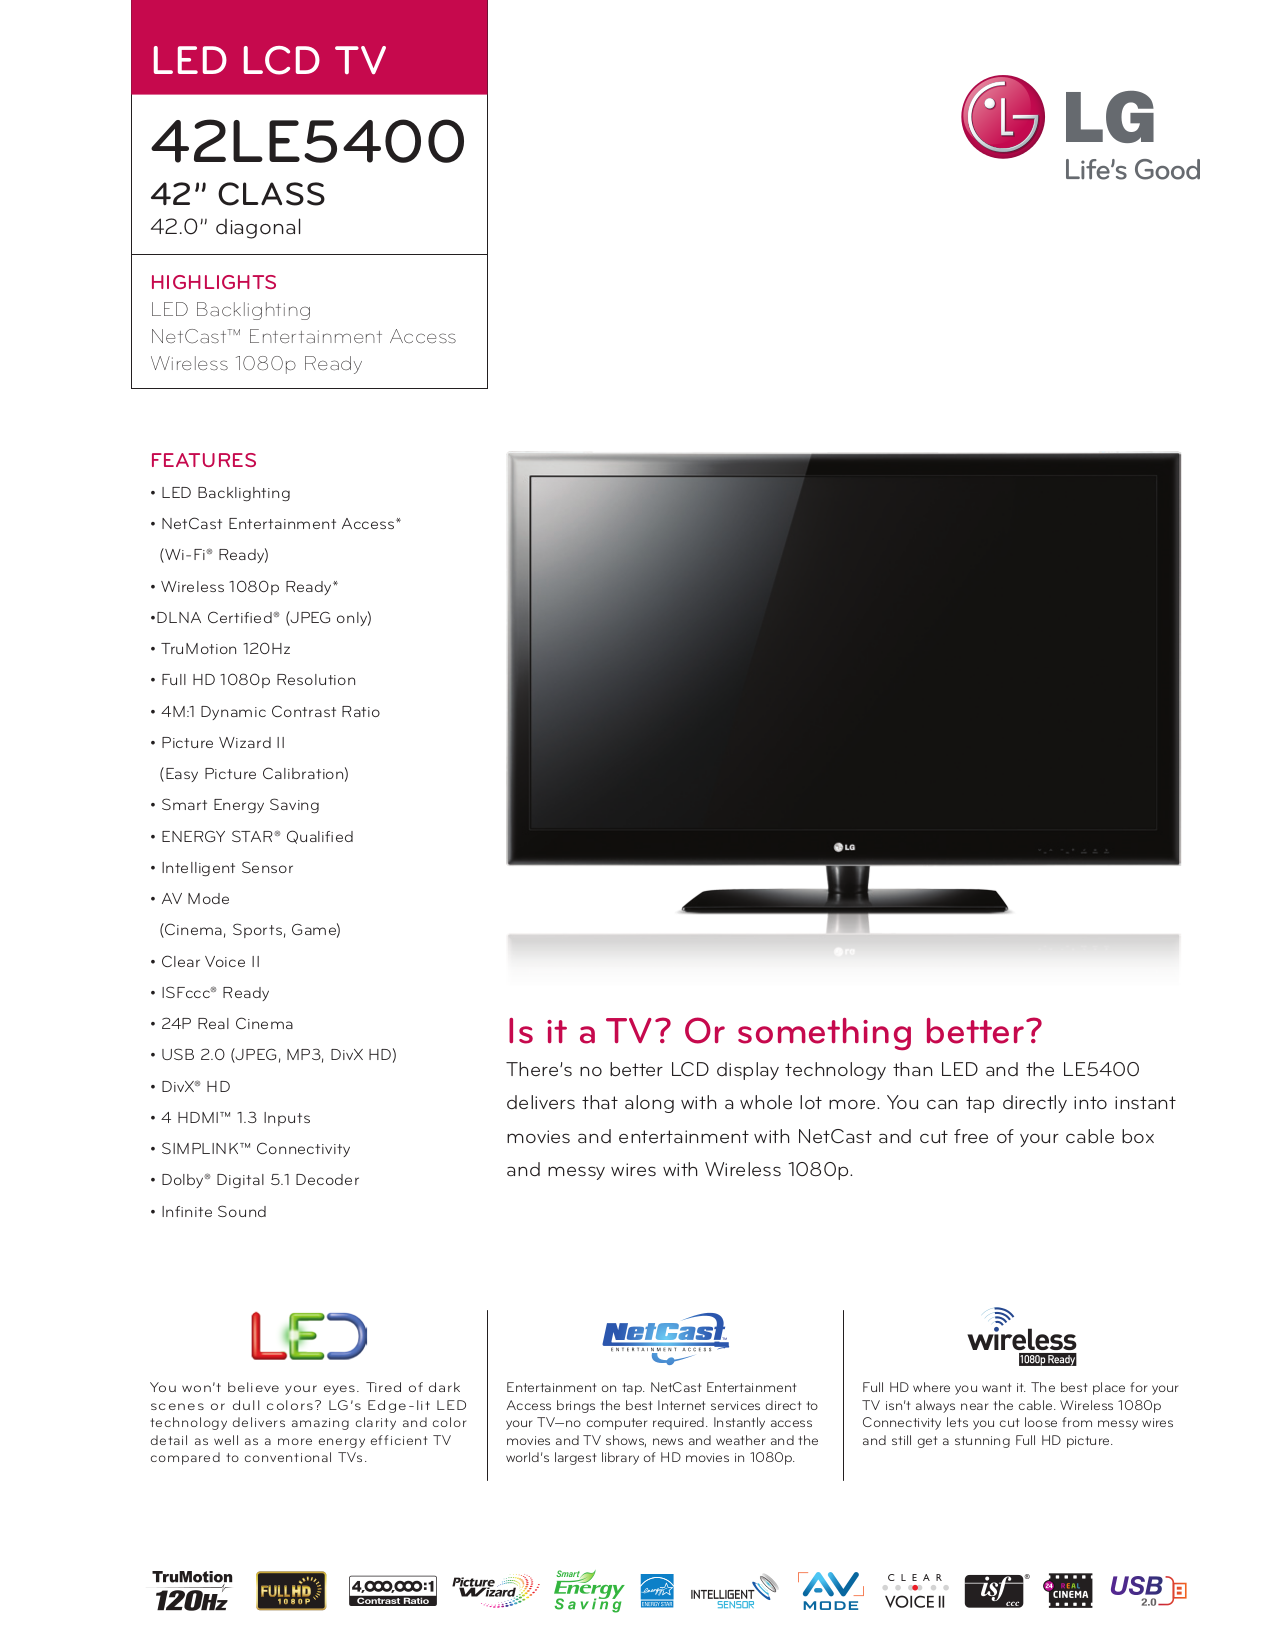 pdf for LG TV 42LE5400 manual